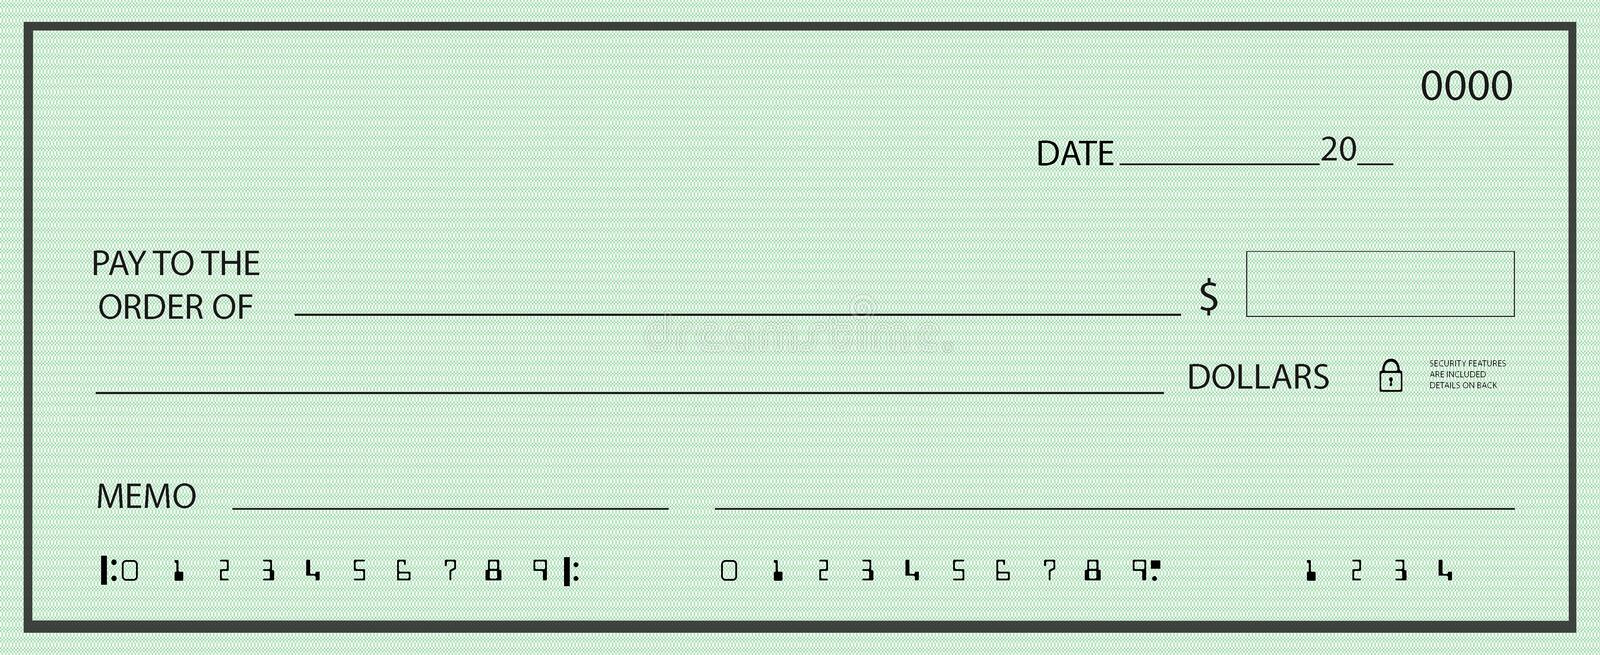 Blank check with false numbers. Illustrations